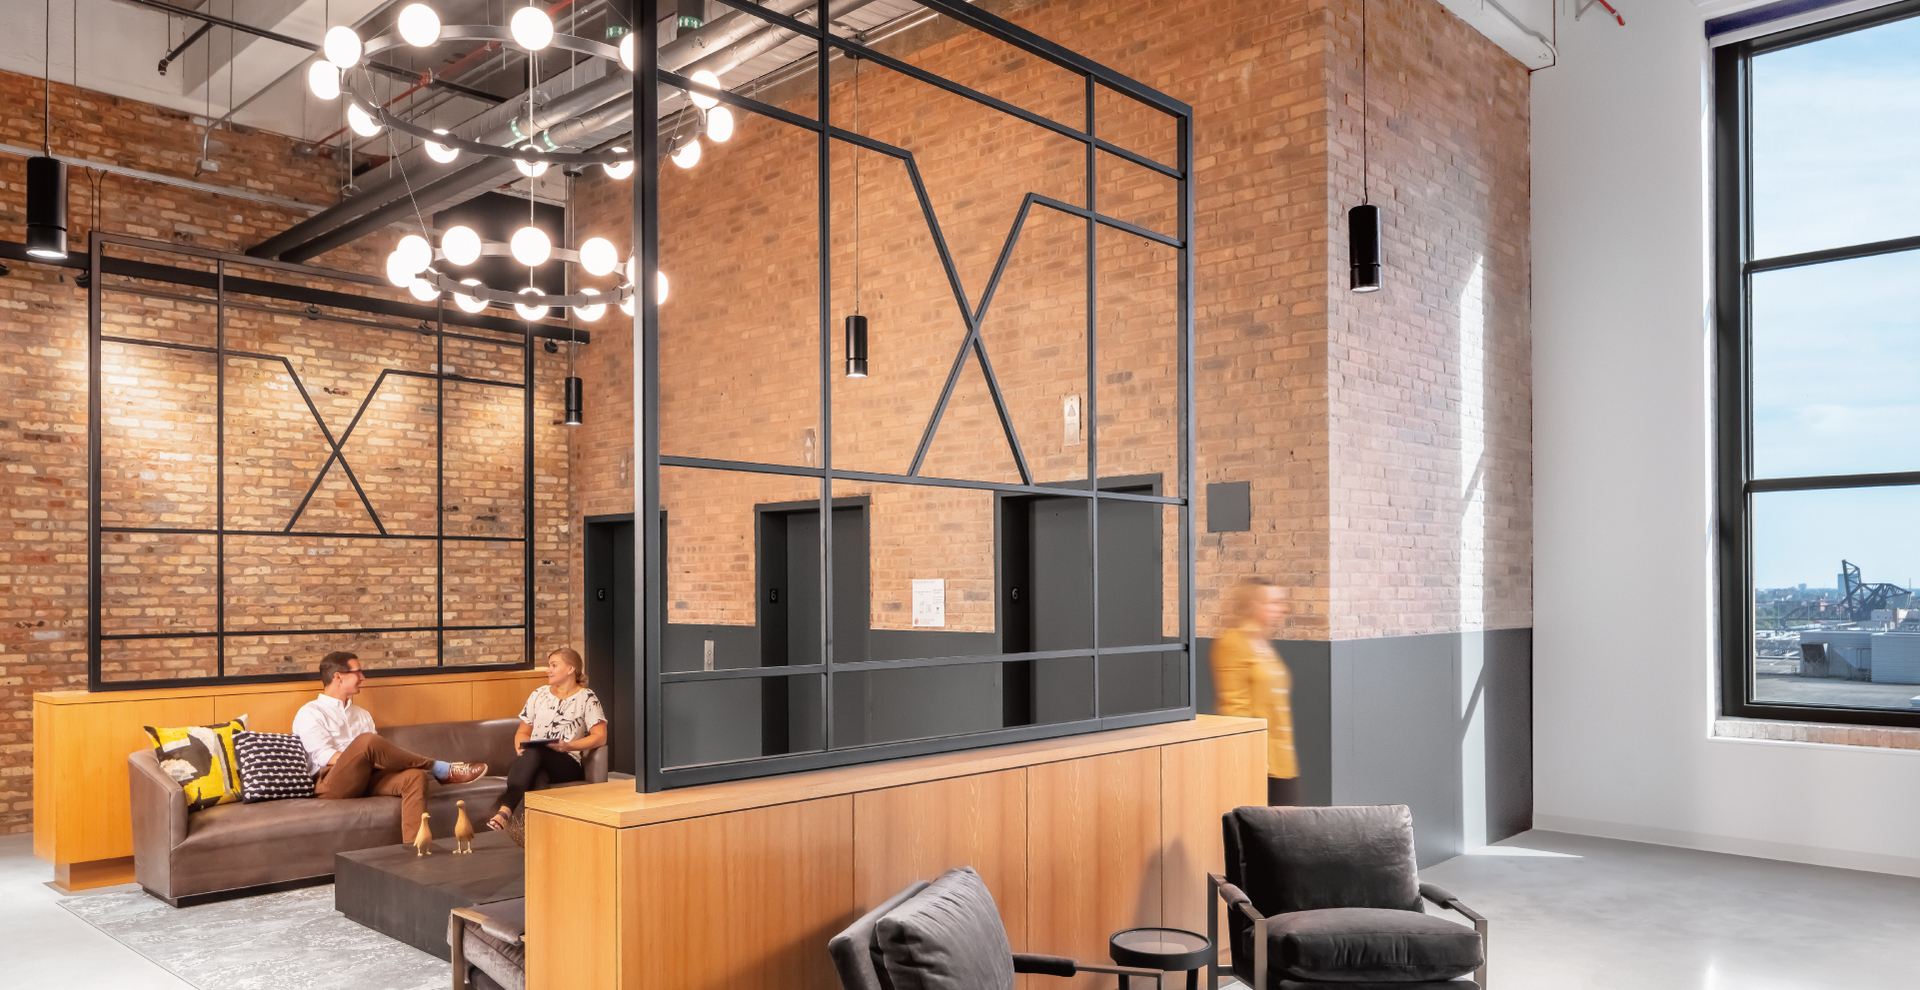 Ferrara Candy Company's new HQ space is located in Chicago's Old Post Office building in downtown Chicago. The building was listed on the National Register of Historic Places in 2001, and inspiring this space are our Atria 4 and Signum 8 cylinders.